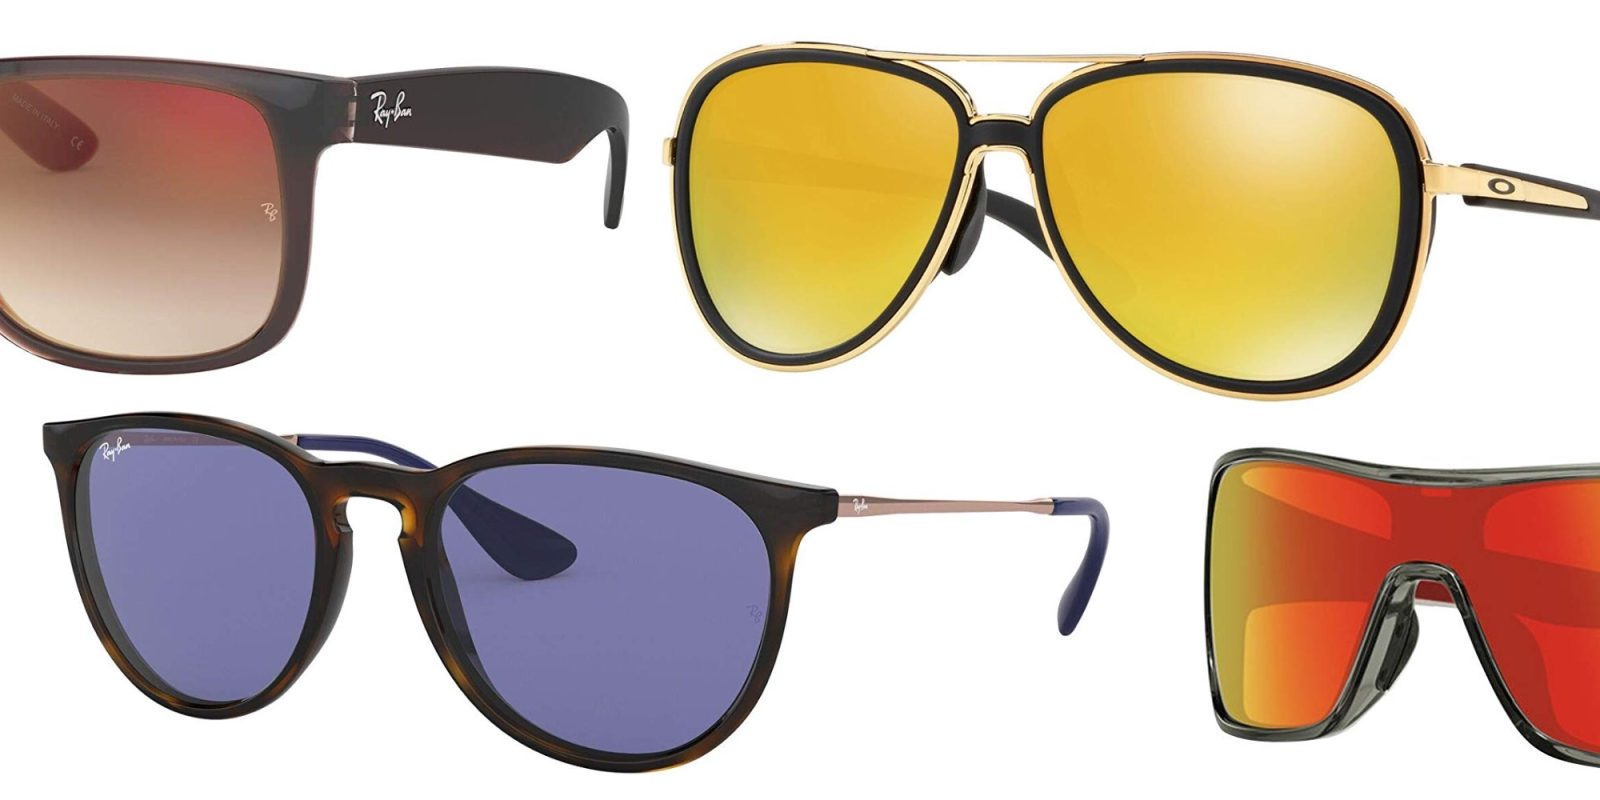 Amazon slashes up to 50% off Oakley and Ray-Ban sunglasses starting at $64